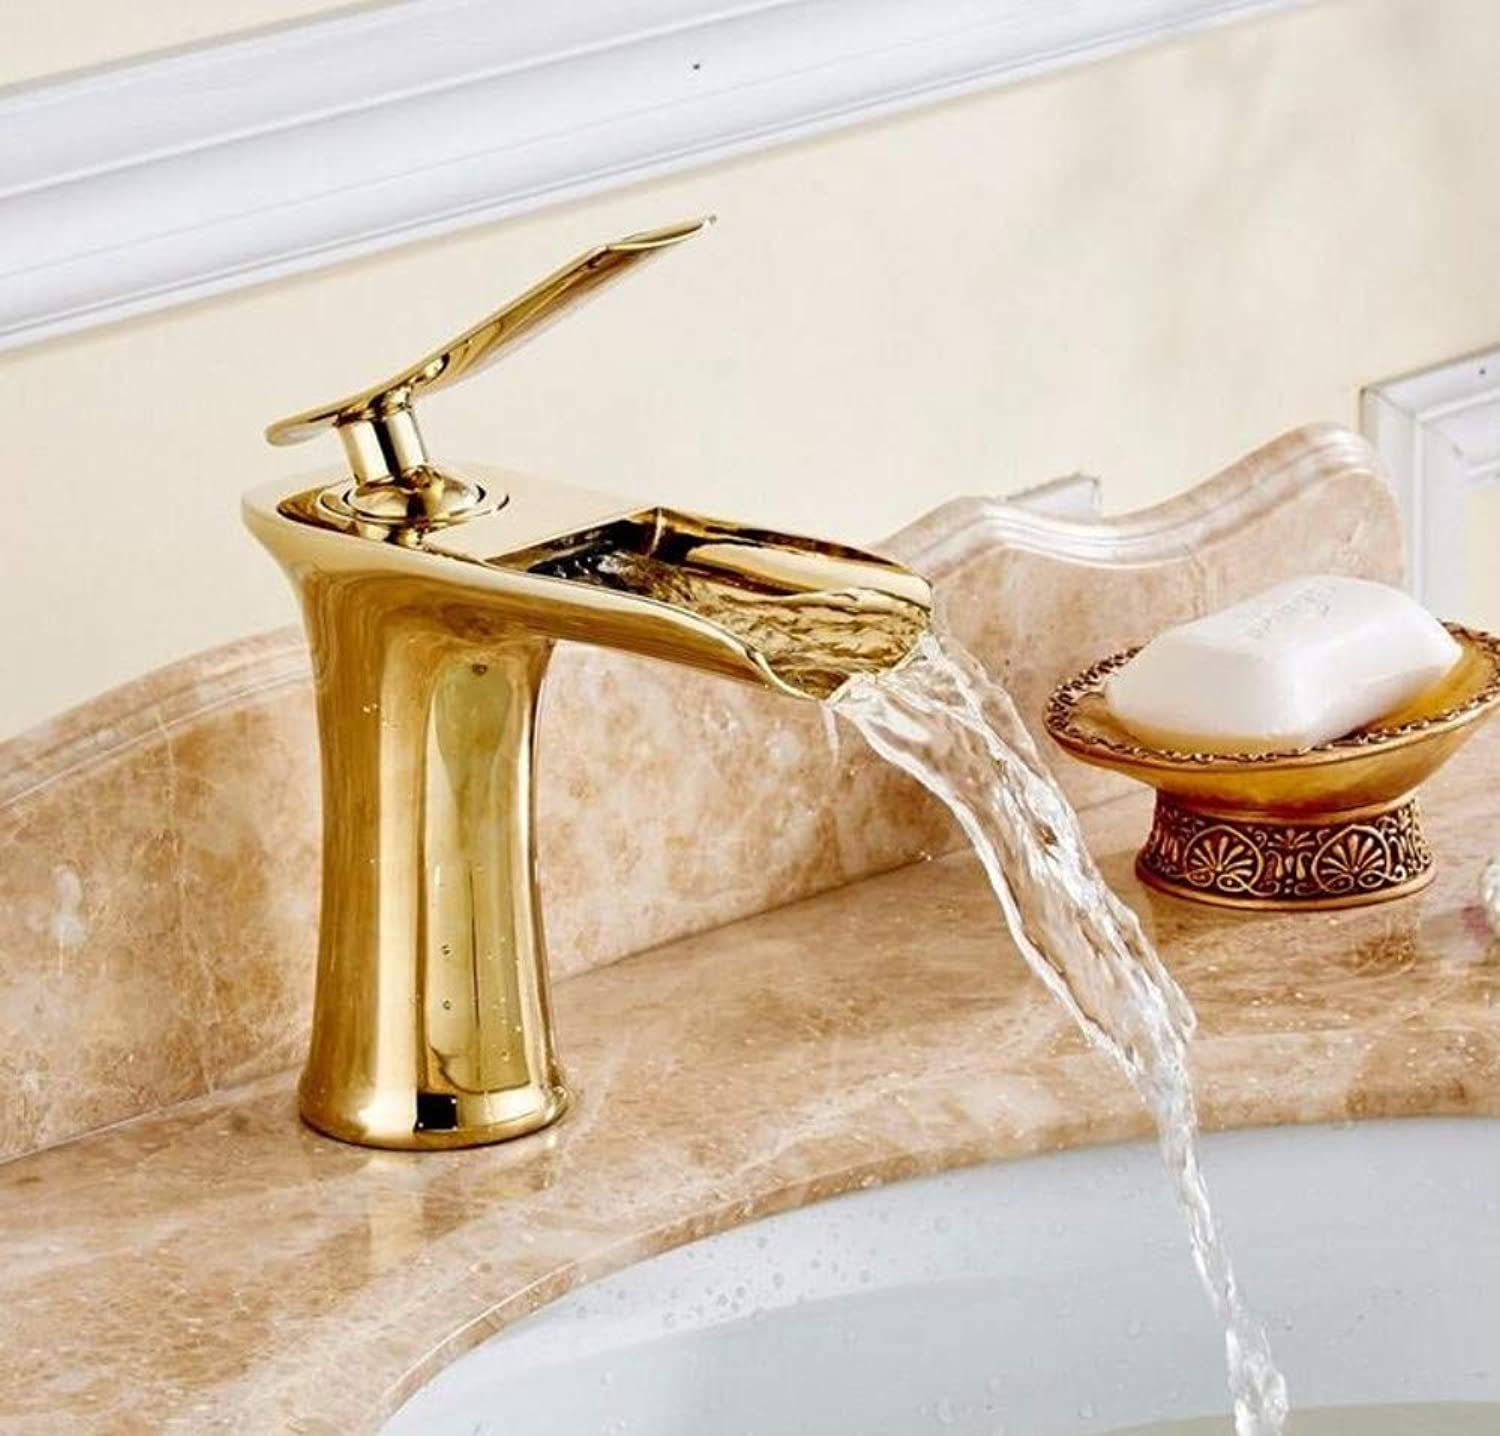 Mixer Basin Taps Bathroom Sink Taps Basin Taps Brass Cold Water Antique gold Bathroom Sink Mixer Tap